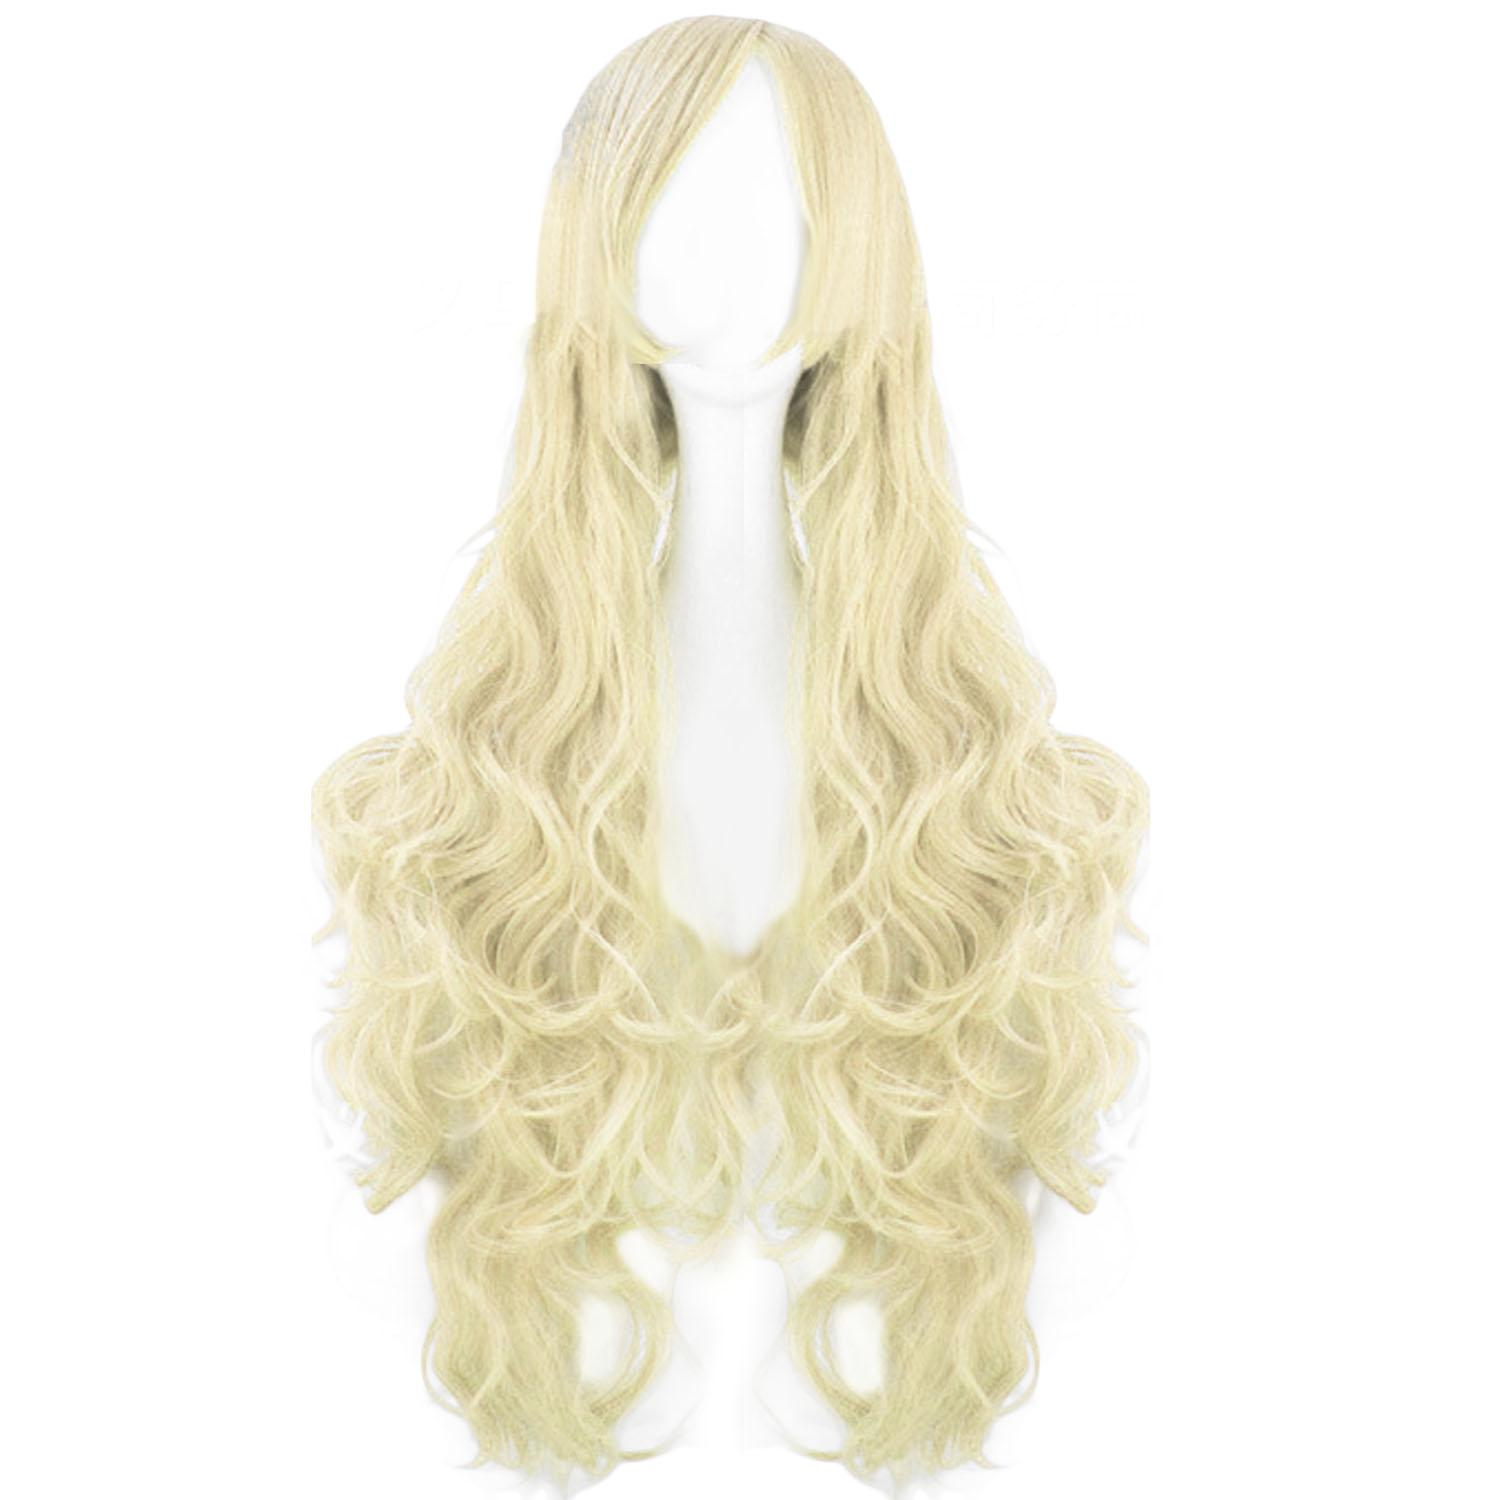 Boom Shakalaka 80cm 32inch Length Fashion Colorful Cosplay Long Curly Hair Extensions Wig for Masquerade Party